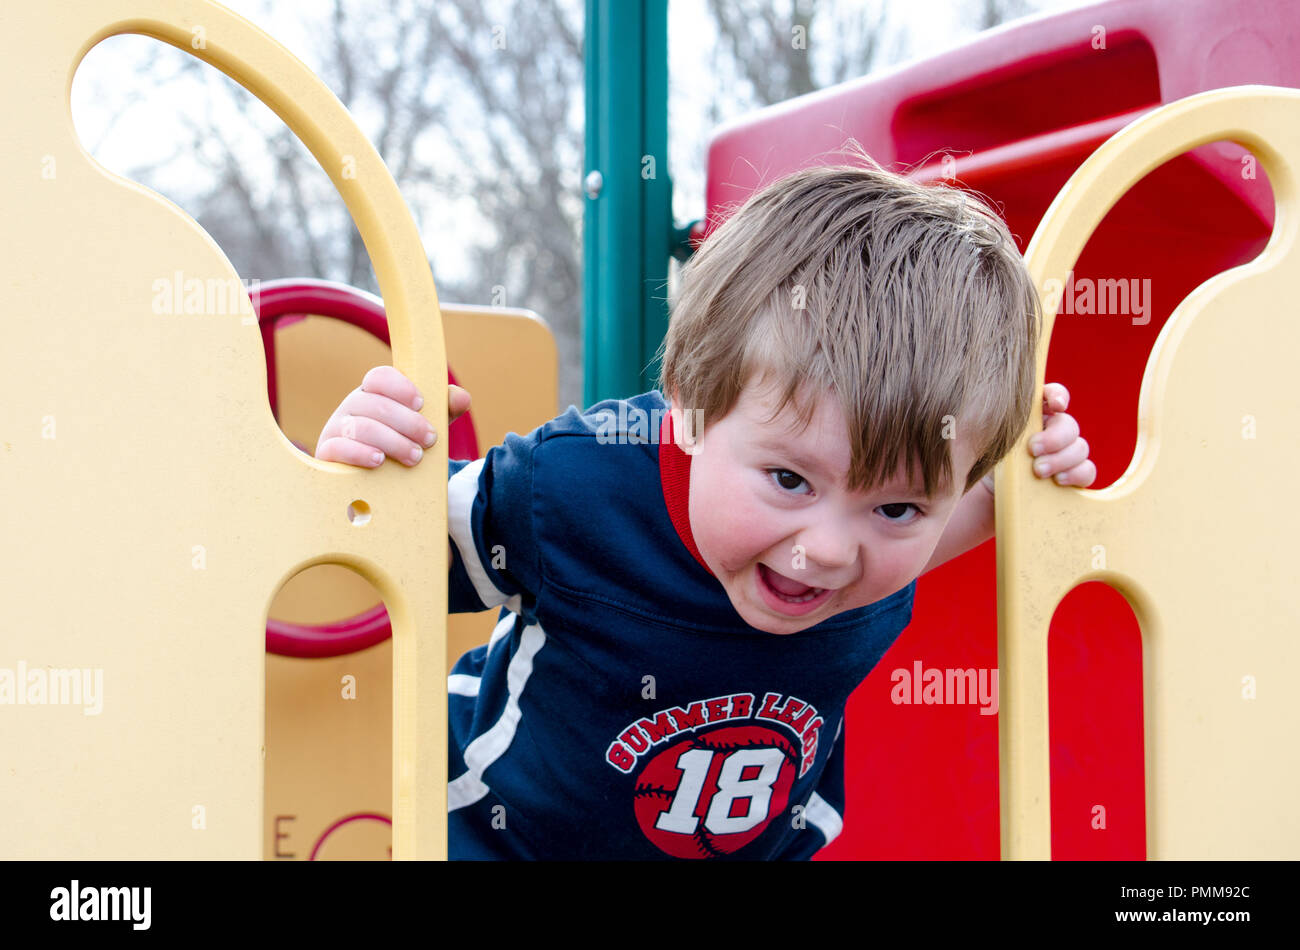 Yelling child at the park - Stock Image